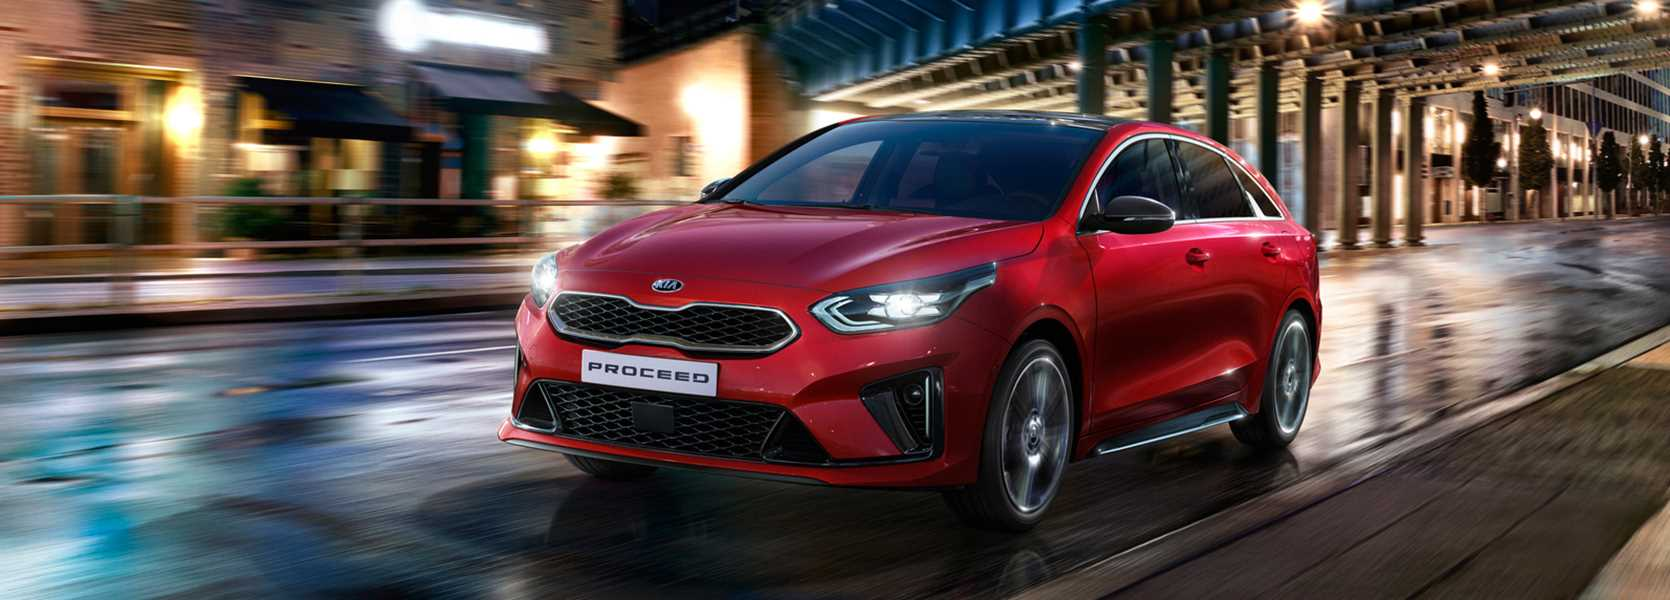 Kia Proceed Available at Canterbury Kia